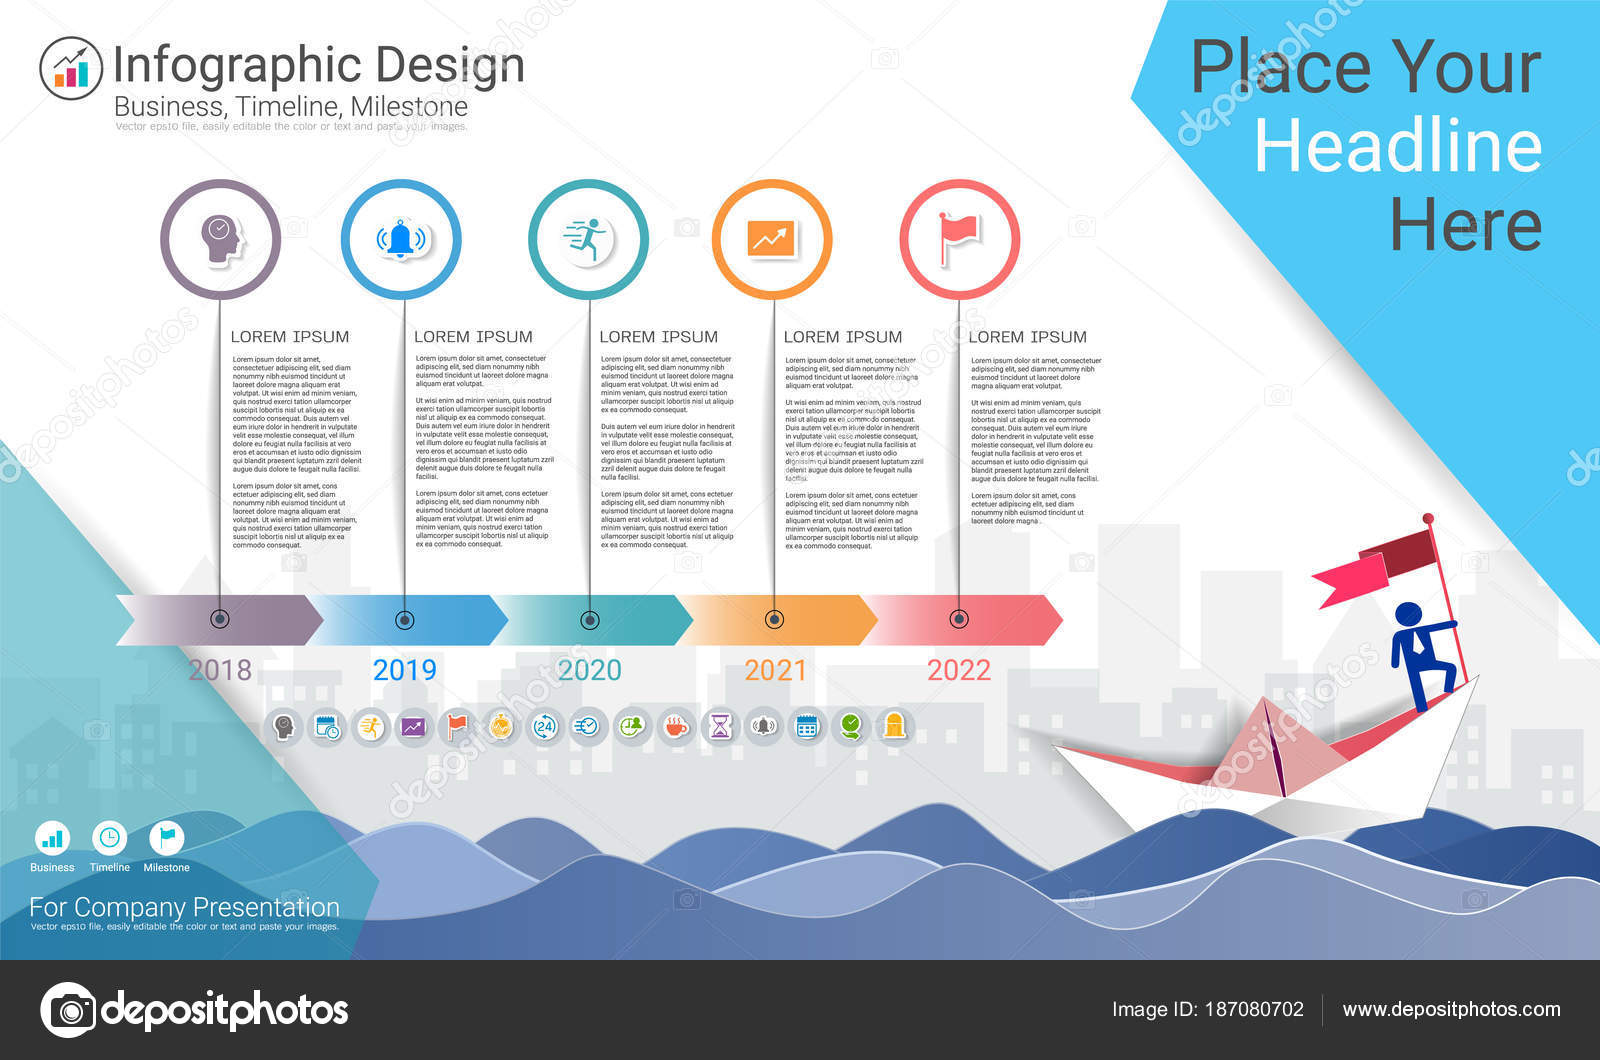 Milestone Timeline Infographic Design Road Map Strategic Plan Define Company Stock Vector